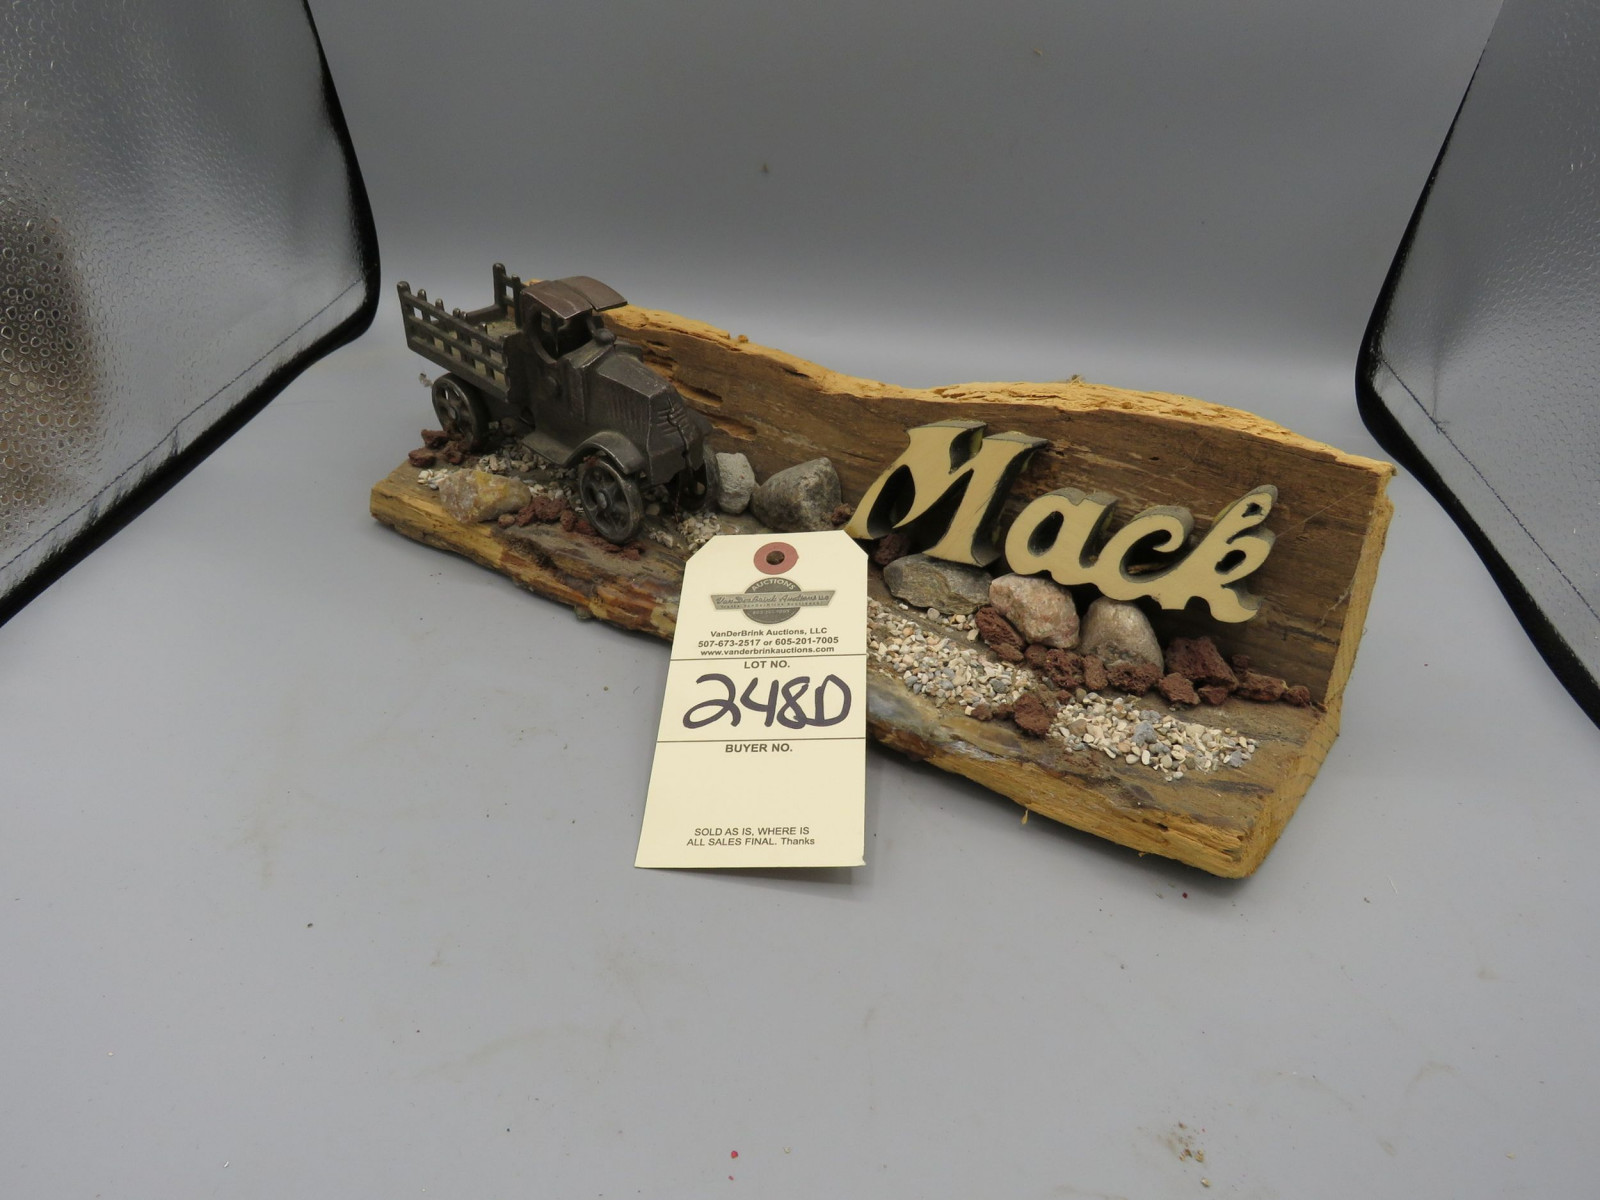 Cast Iron Bull Dog Mack Toy Signs - Image 1